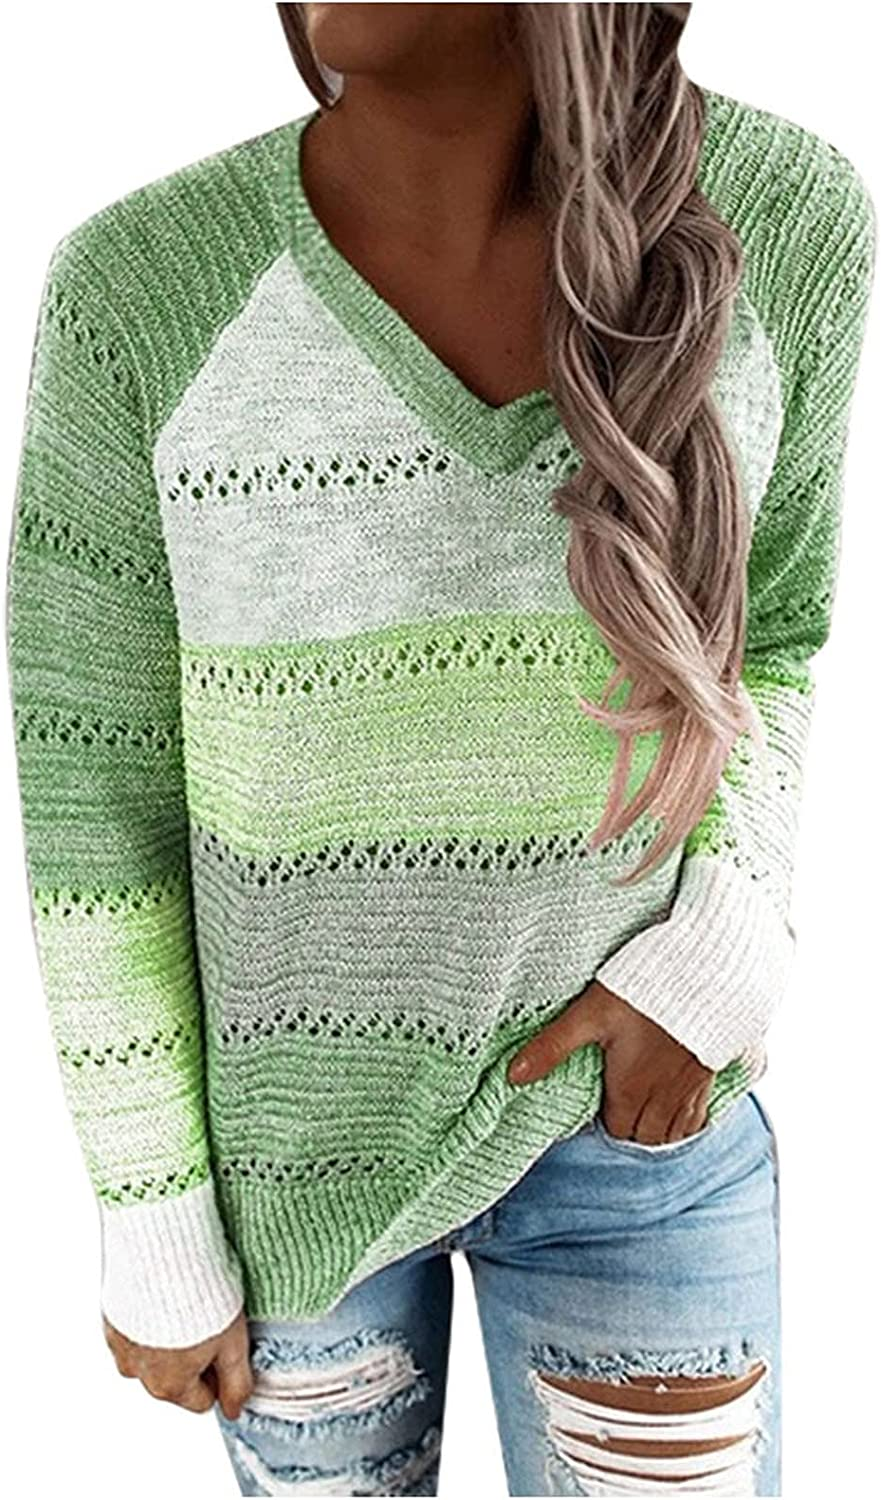 Womens Tops for Fall Winter Loose Fit V Neck Knit Shirts Casual Long Sleeve Pullover Color Block Sweatshirt